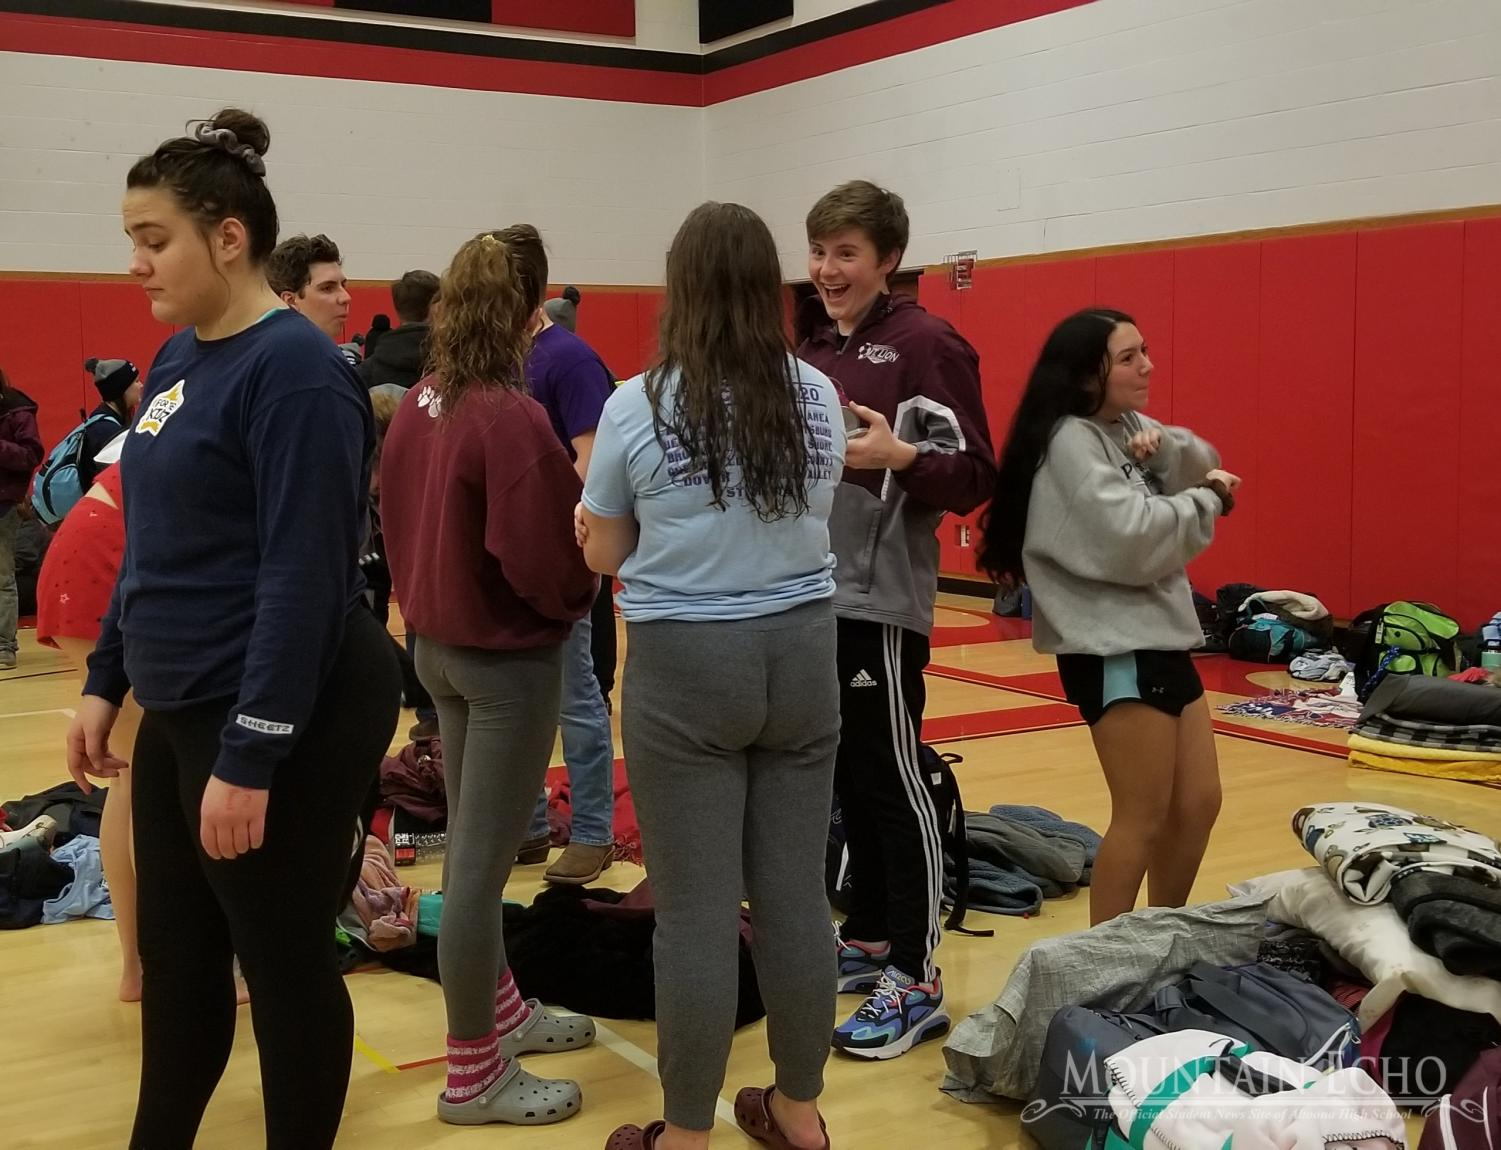 Members of the teams stand in the gym at Clearfield High School at the end of the invitational. After the invitational, swimmers got pizza to eat on the bus ride home.